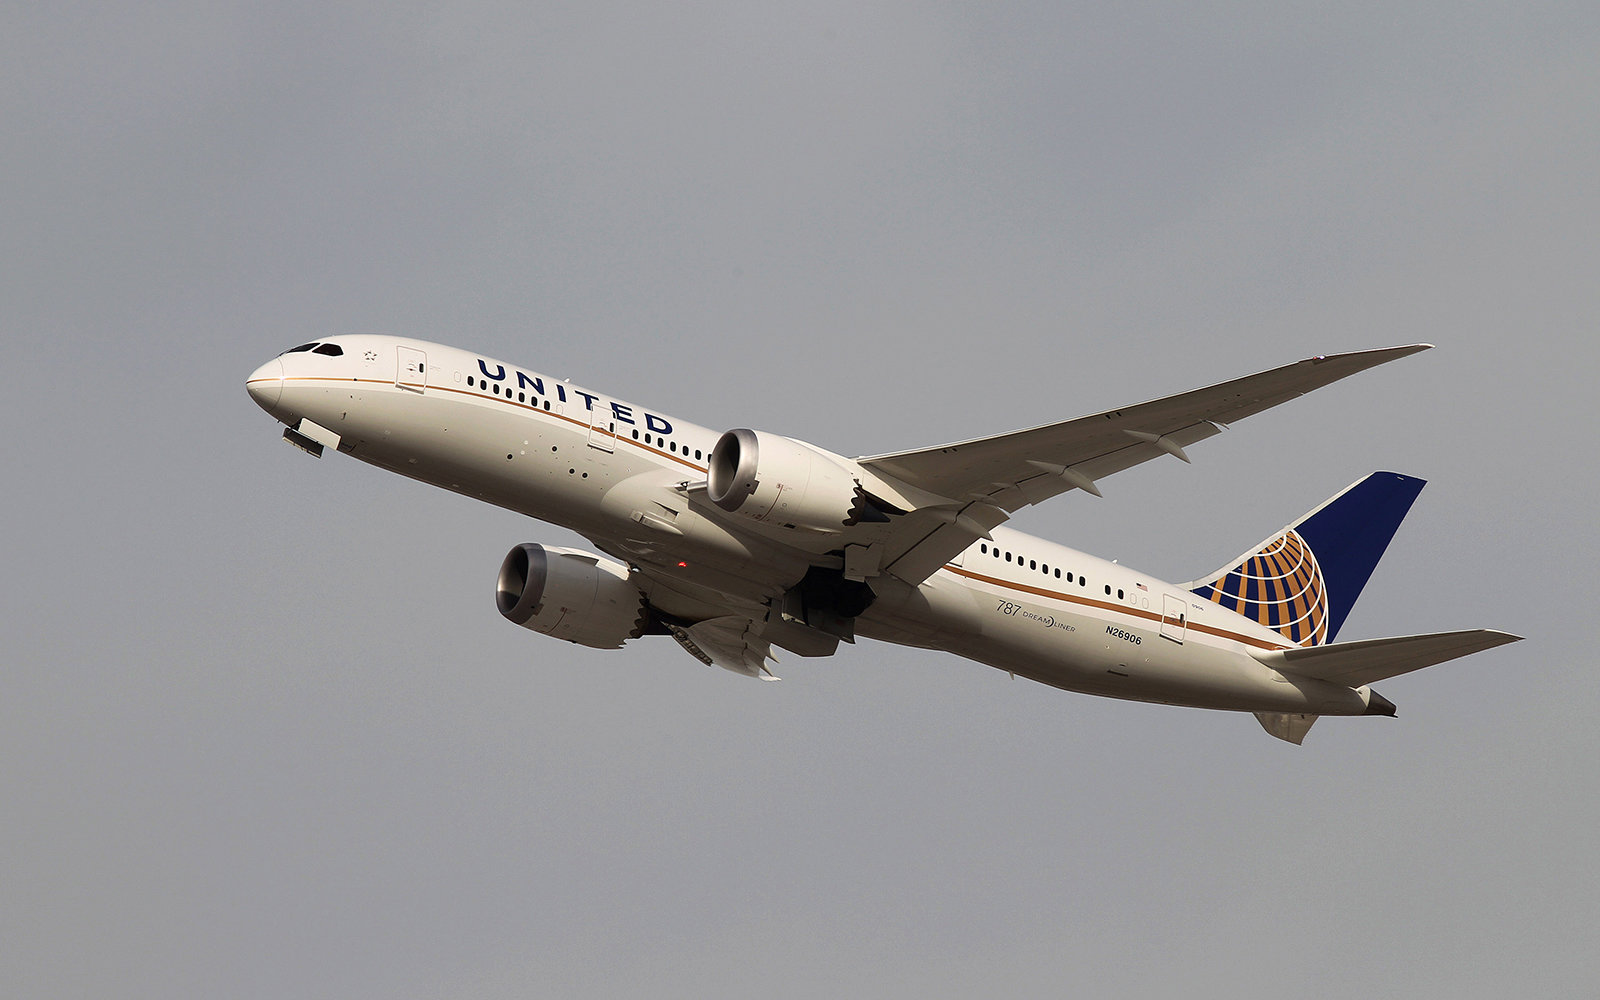 Man Kicked Off Plane After Passenger Complains About His Weight